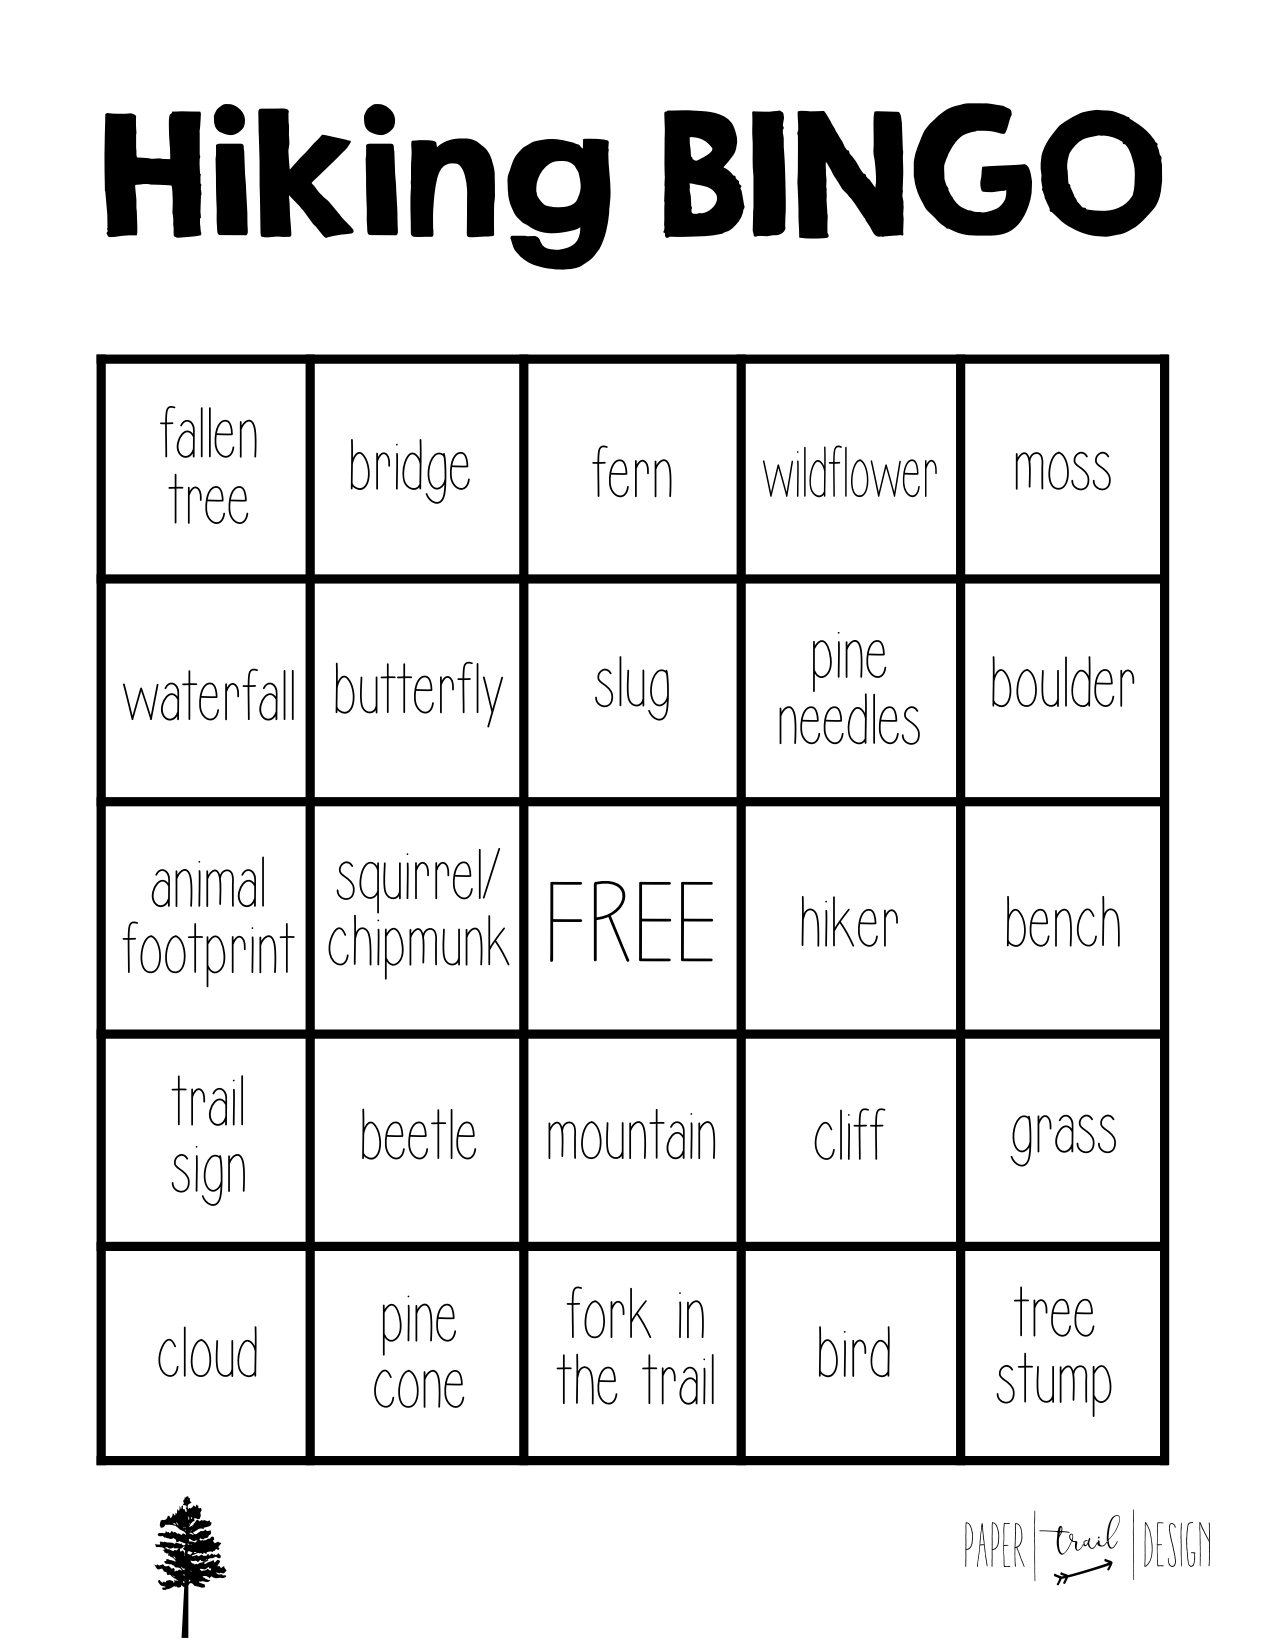 Hiking Bingo Free Printable Paper Trail Design